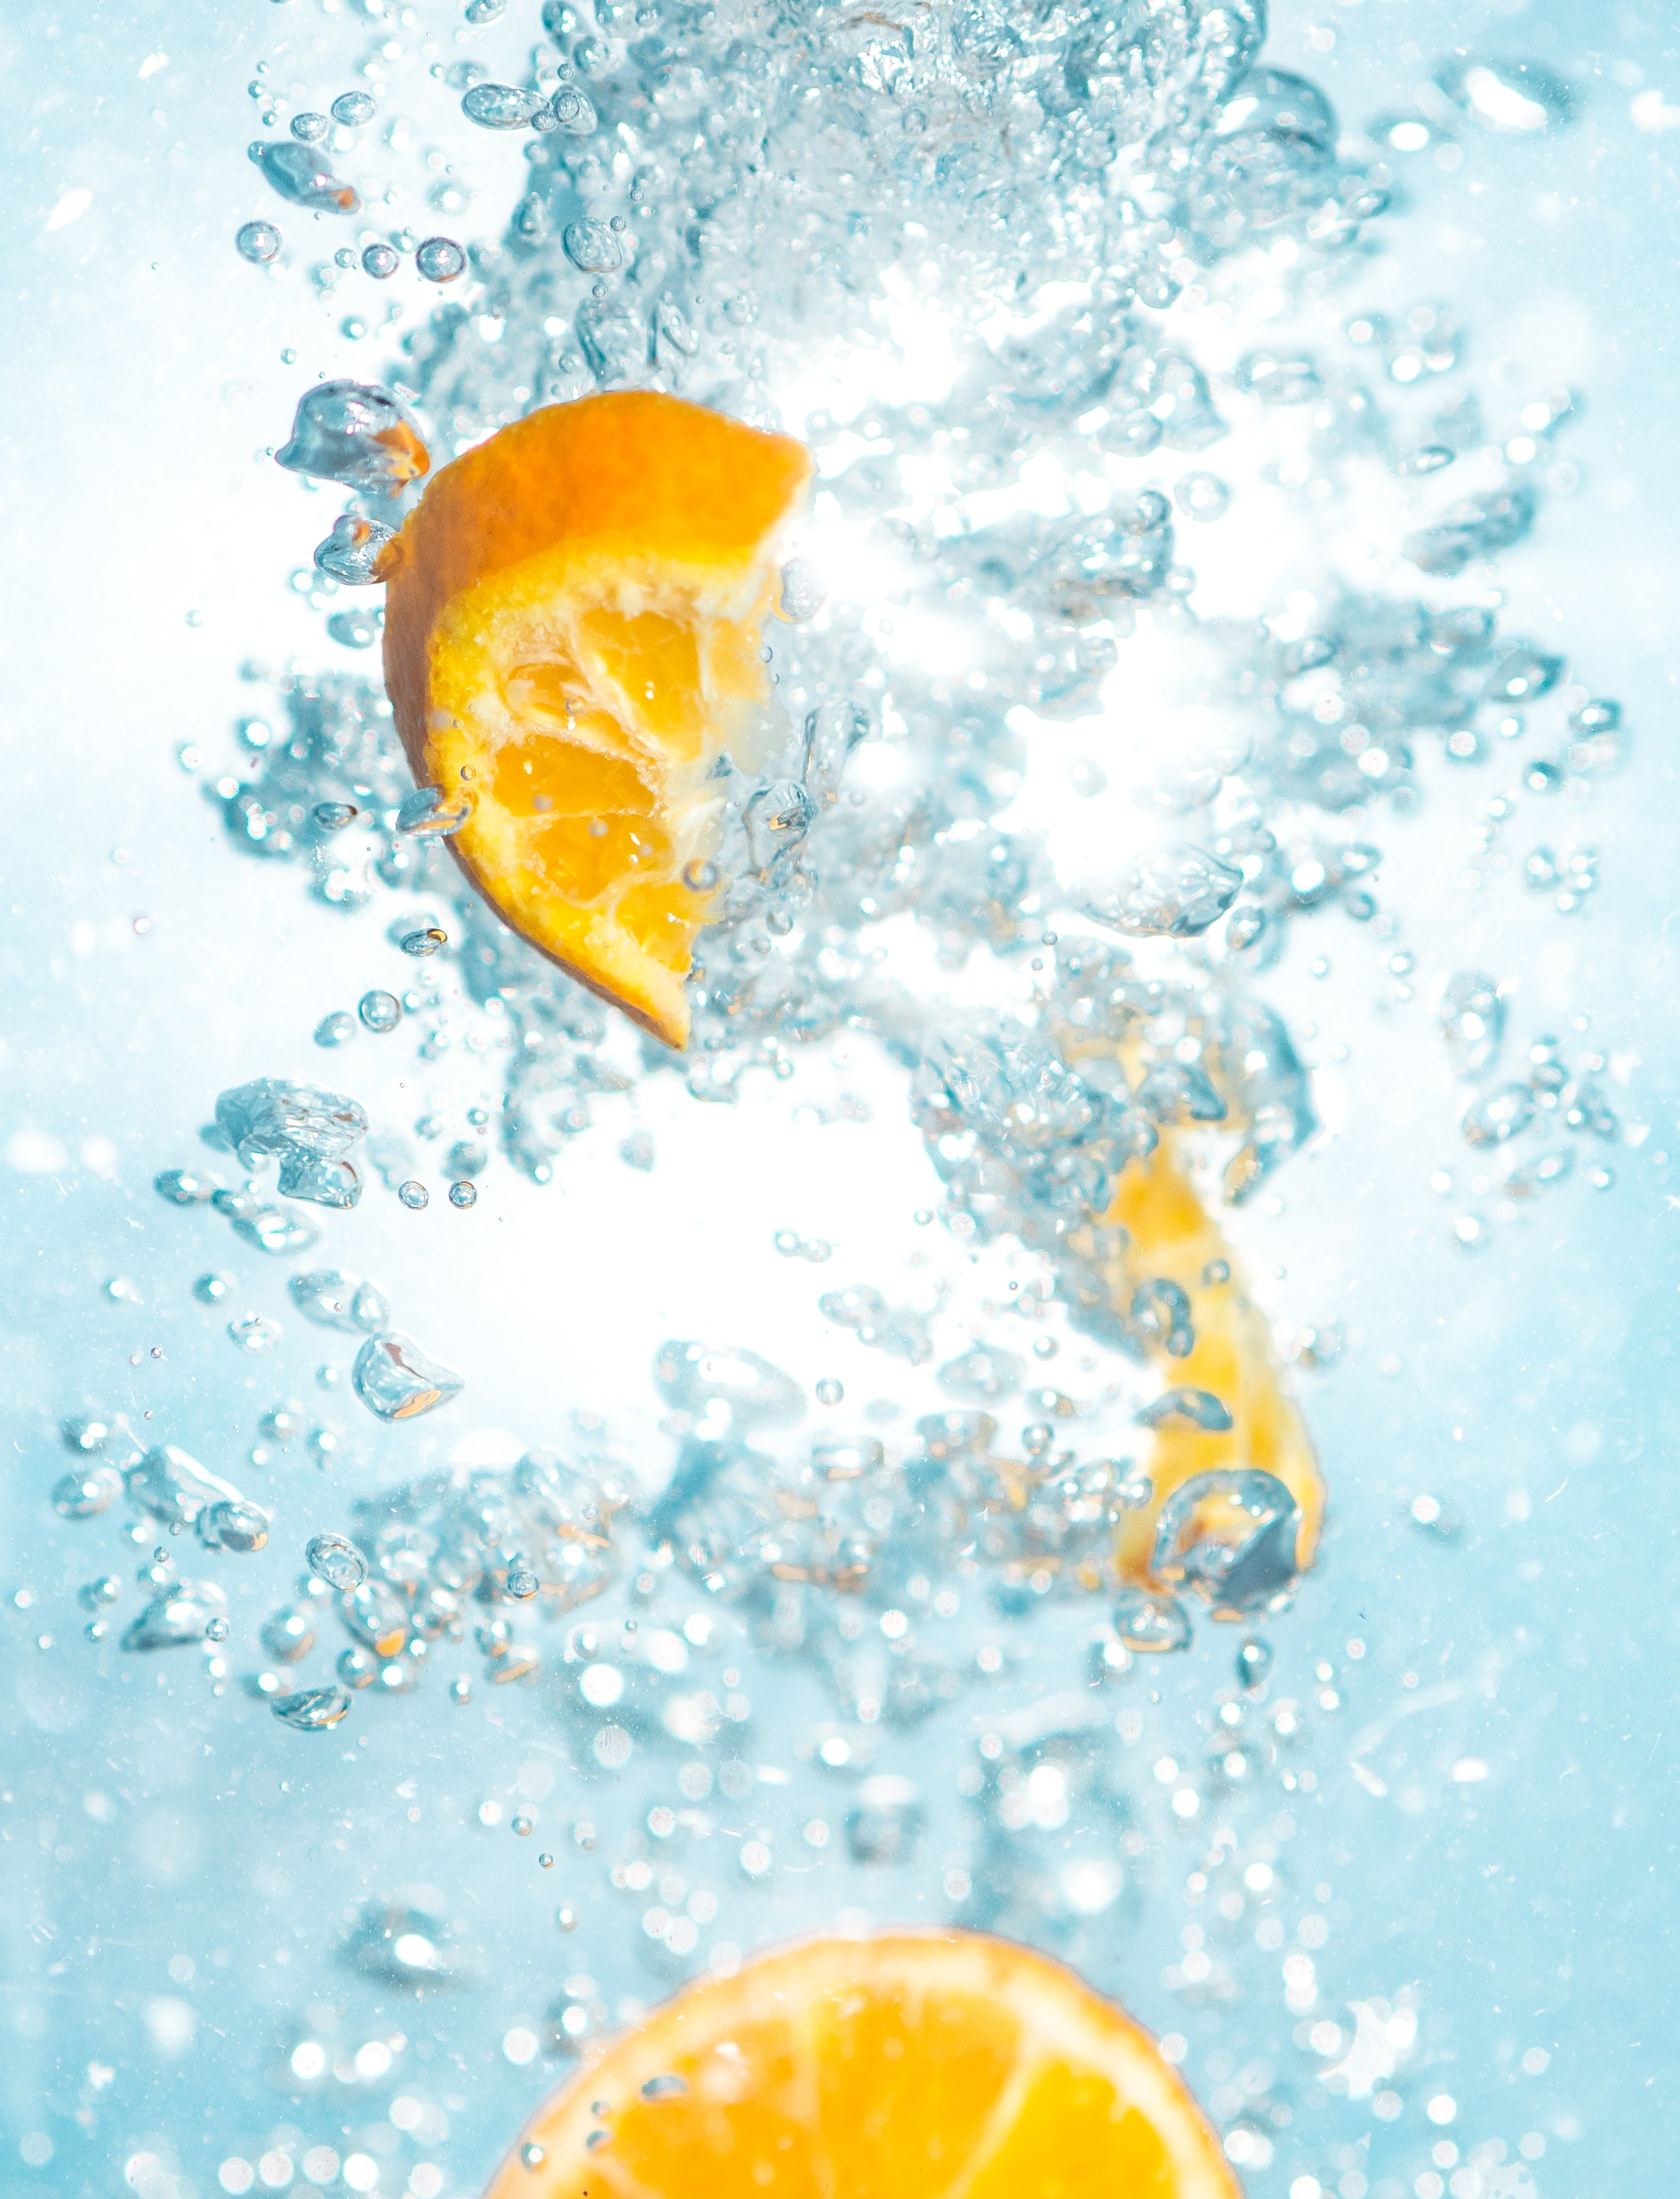 sliced orange fruits underwater